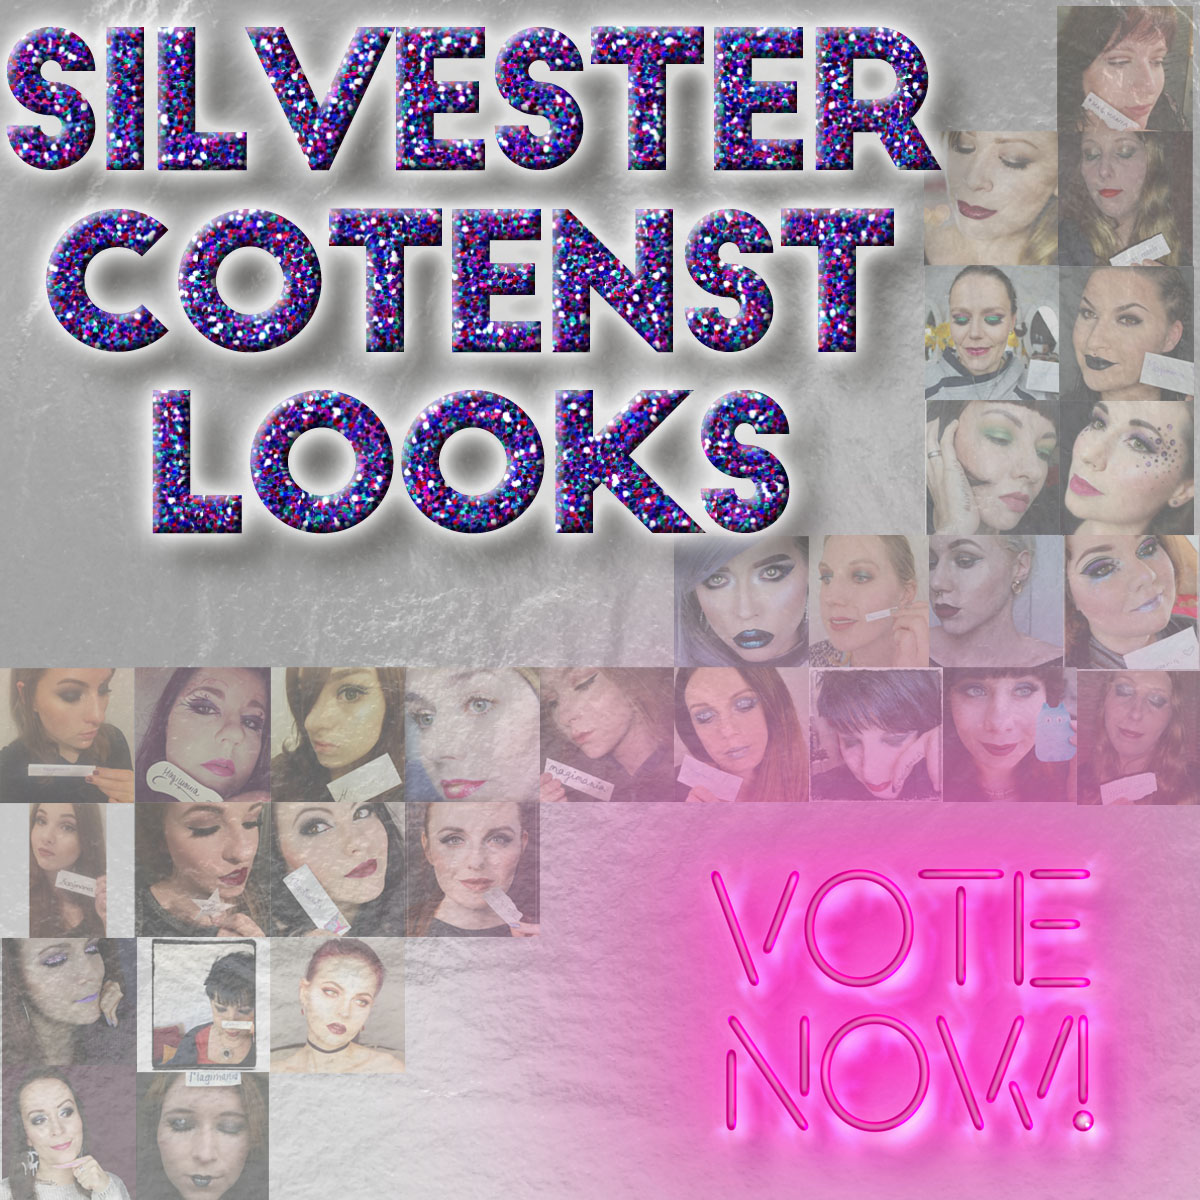 silvester contest voting